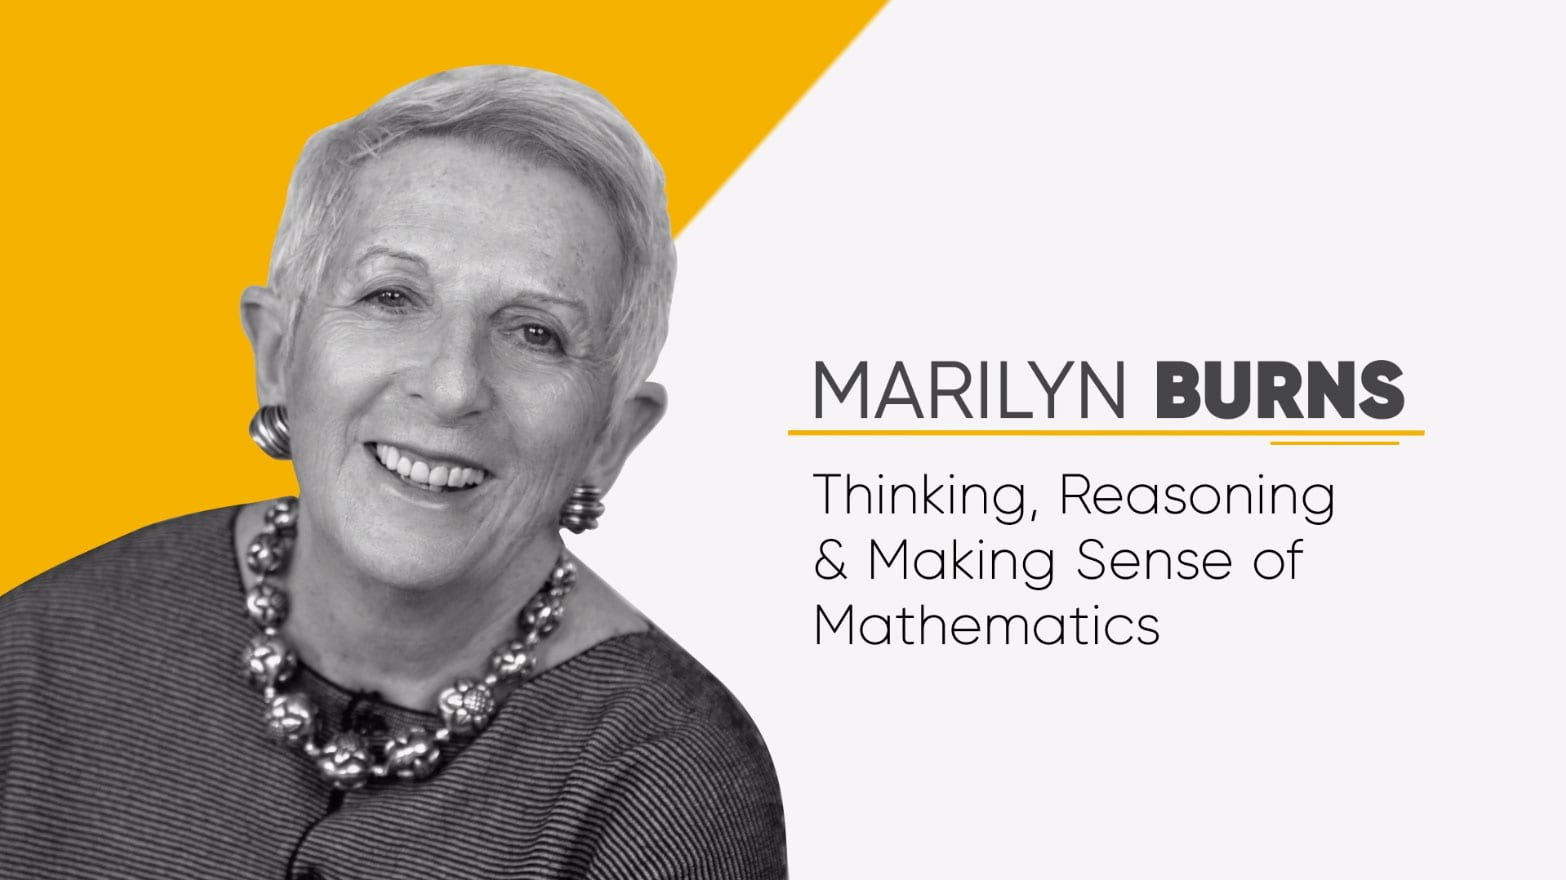 marilyn burns | thinking, reasoning, & making sense of mathematics